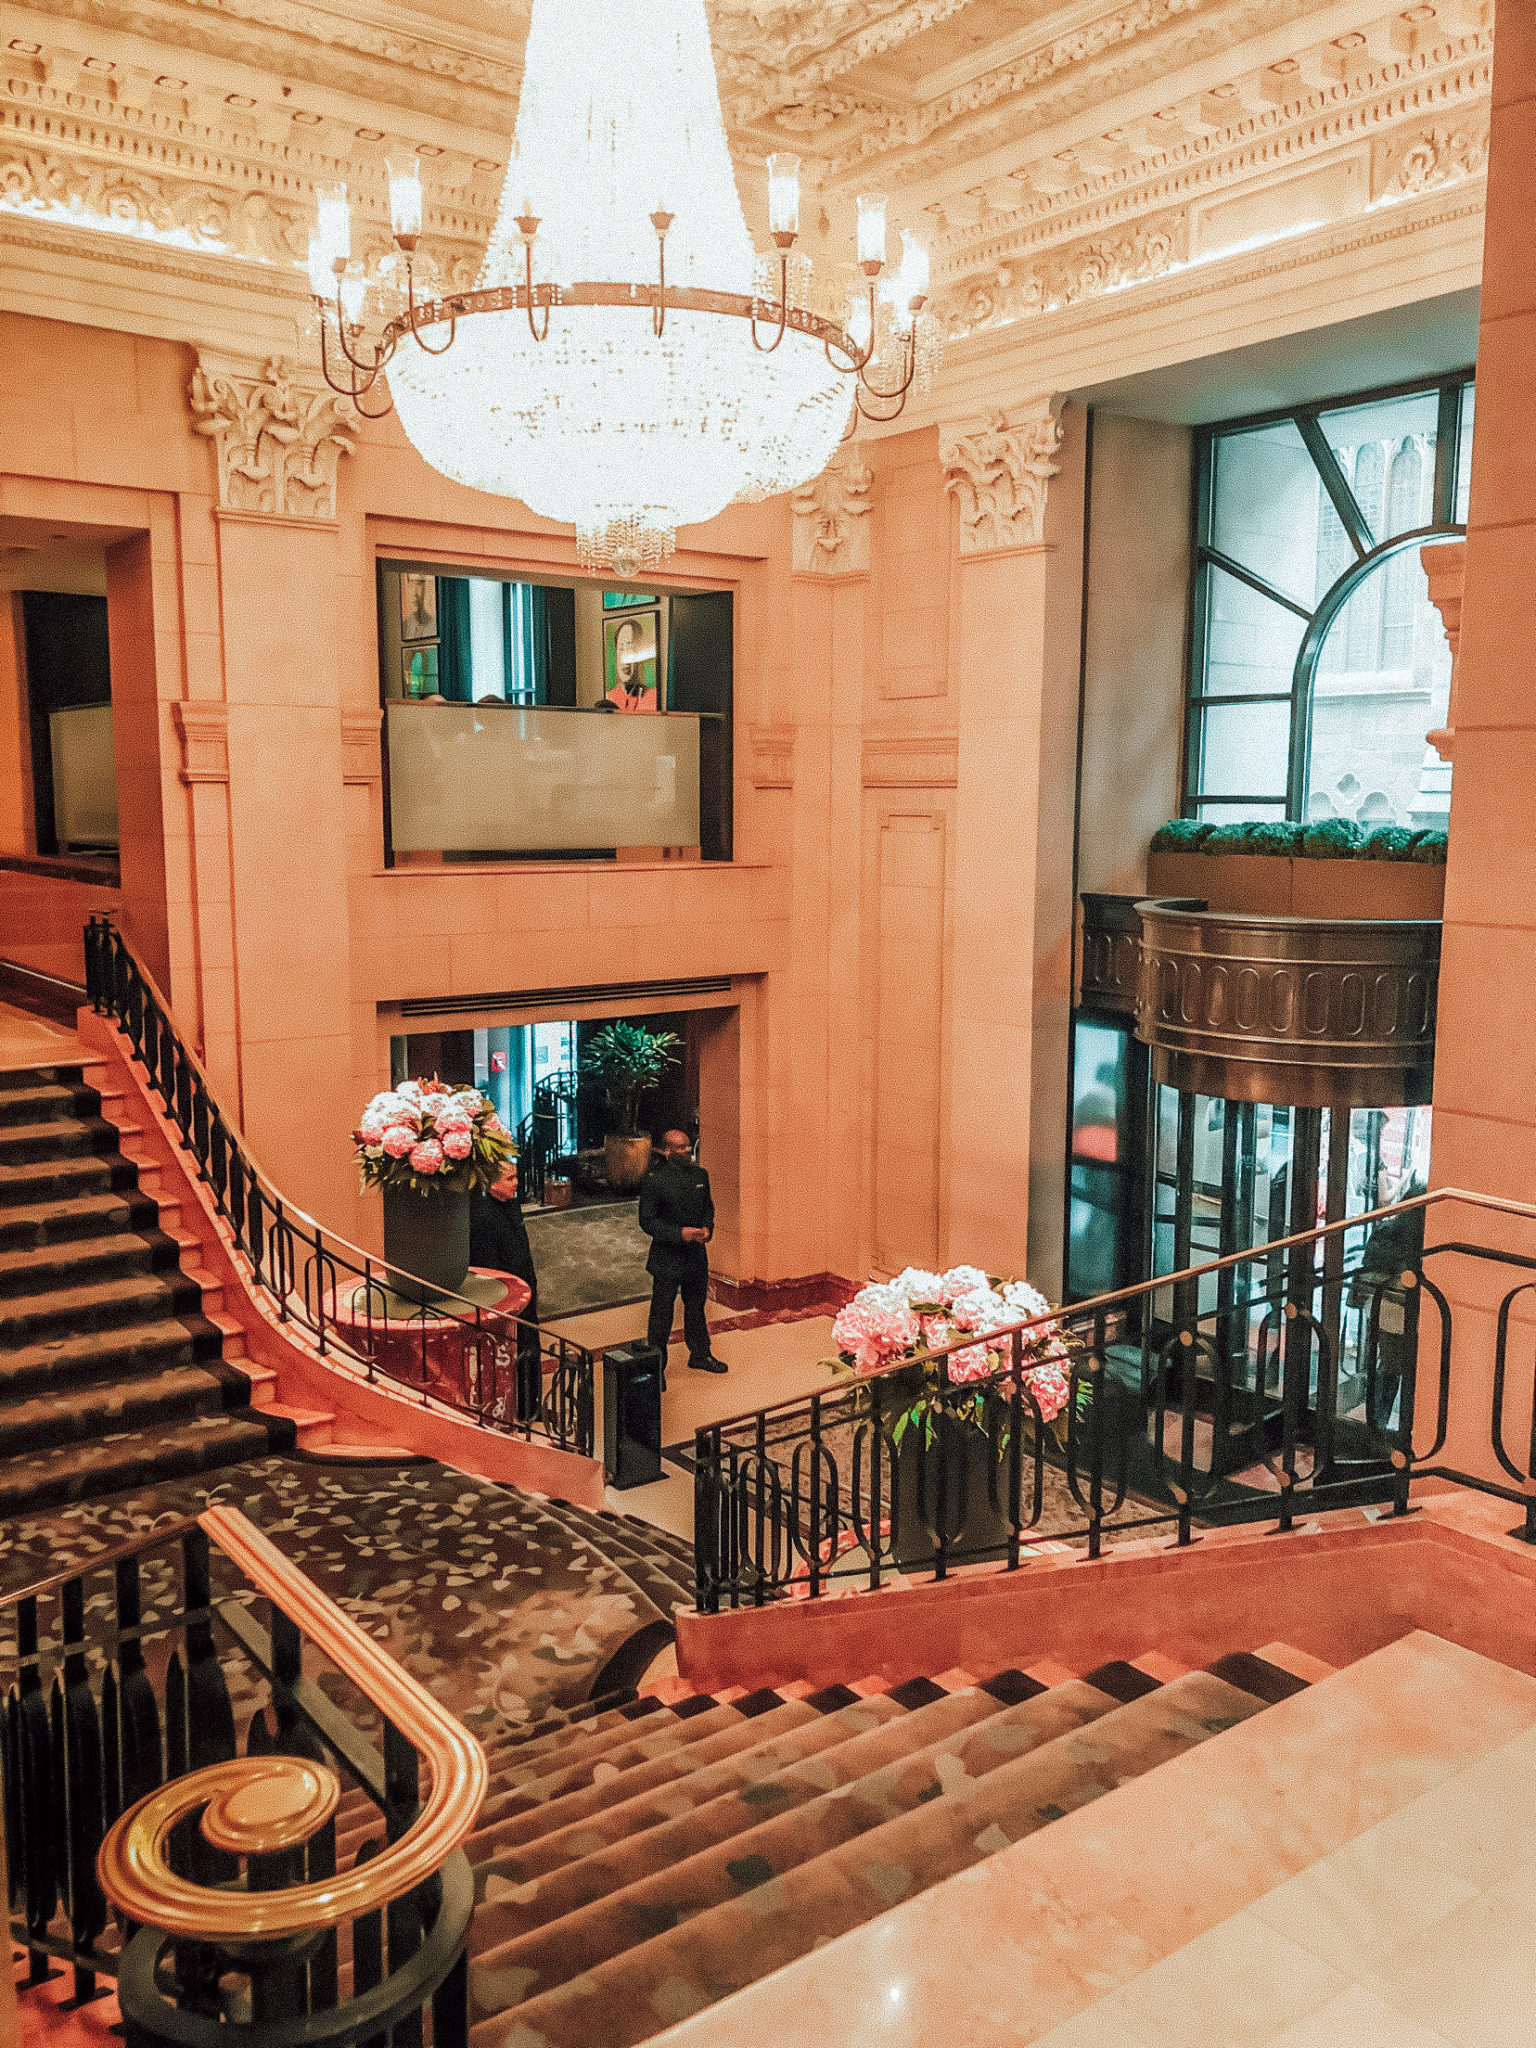 The Peninsula Hotel New York | WORLD OF WANDERLUST